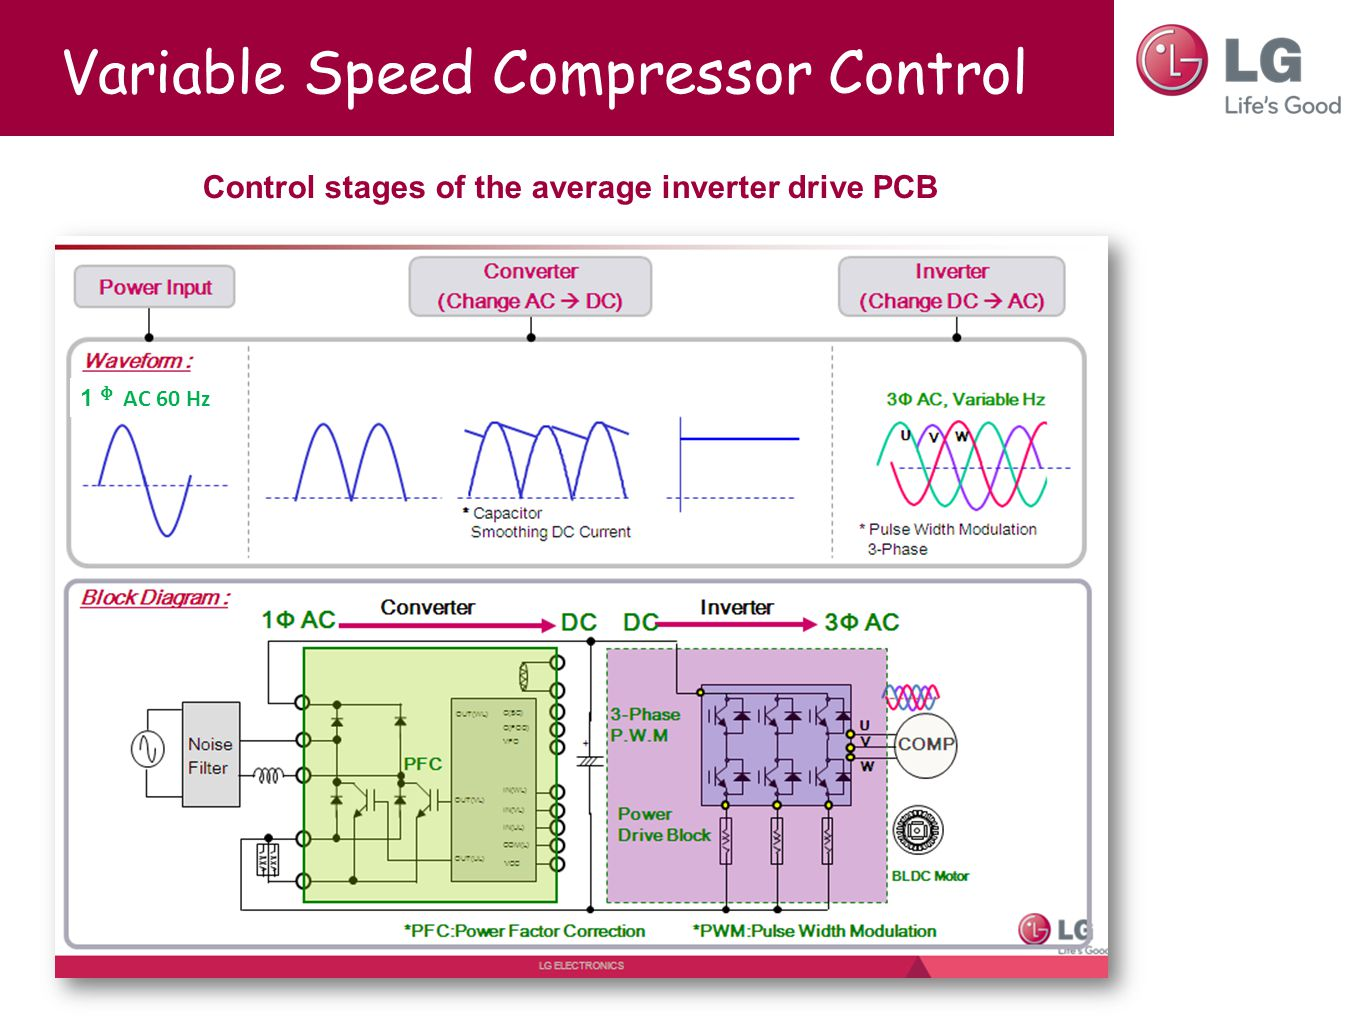 Variable Speed Compressor Control Control stages of the average inverter drive PCB 1 ᶲ AC 60 Hz